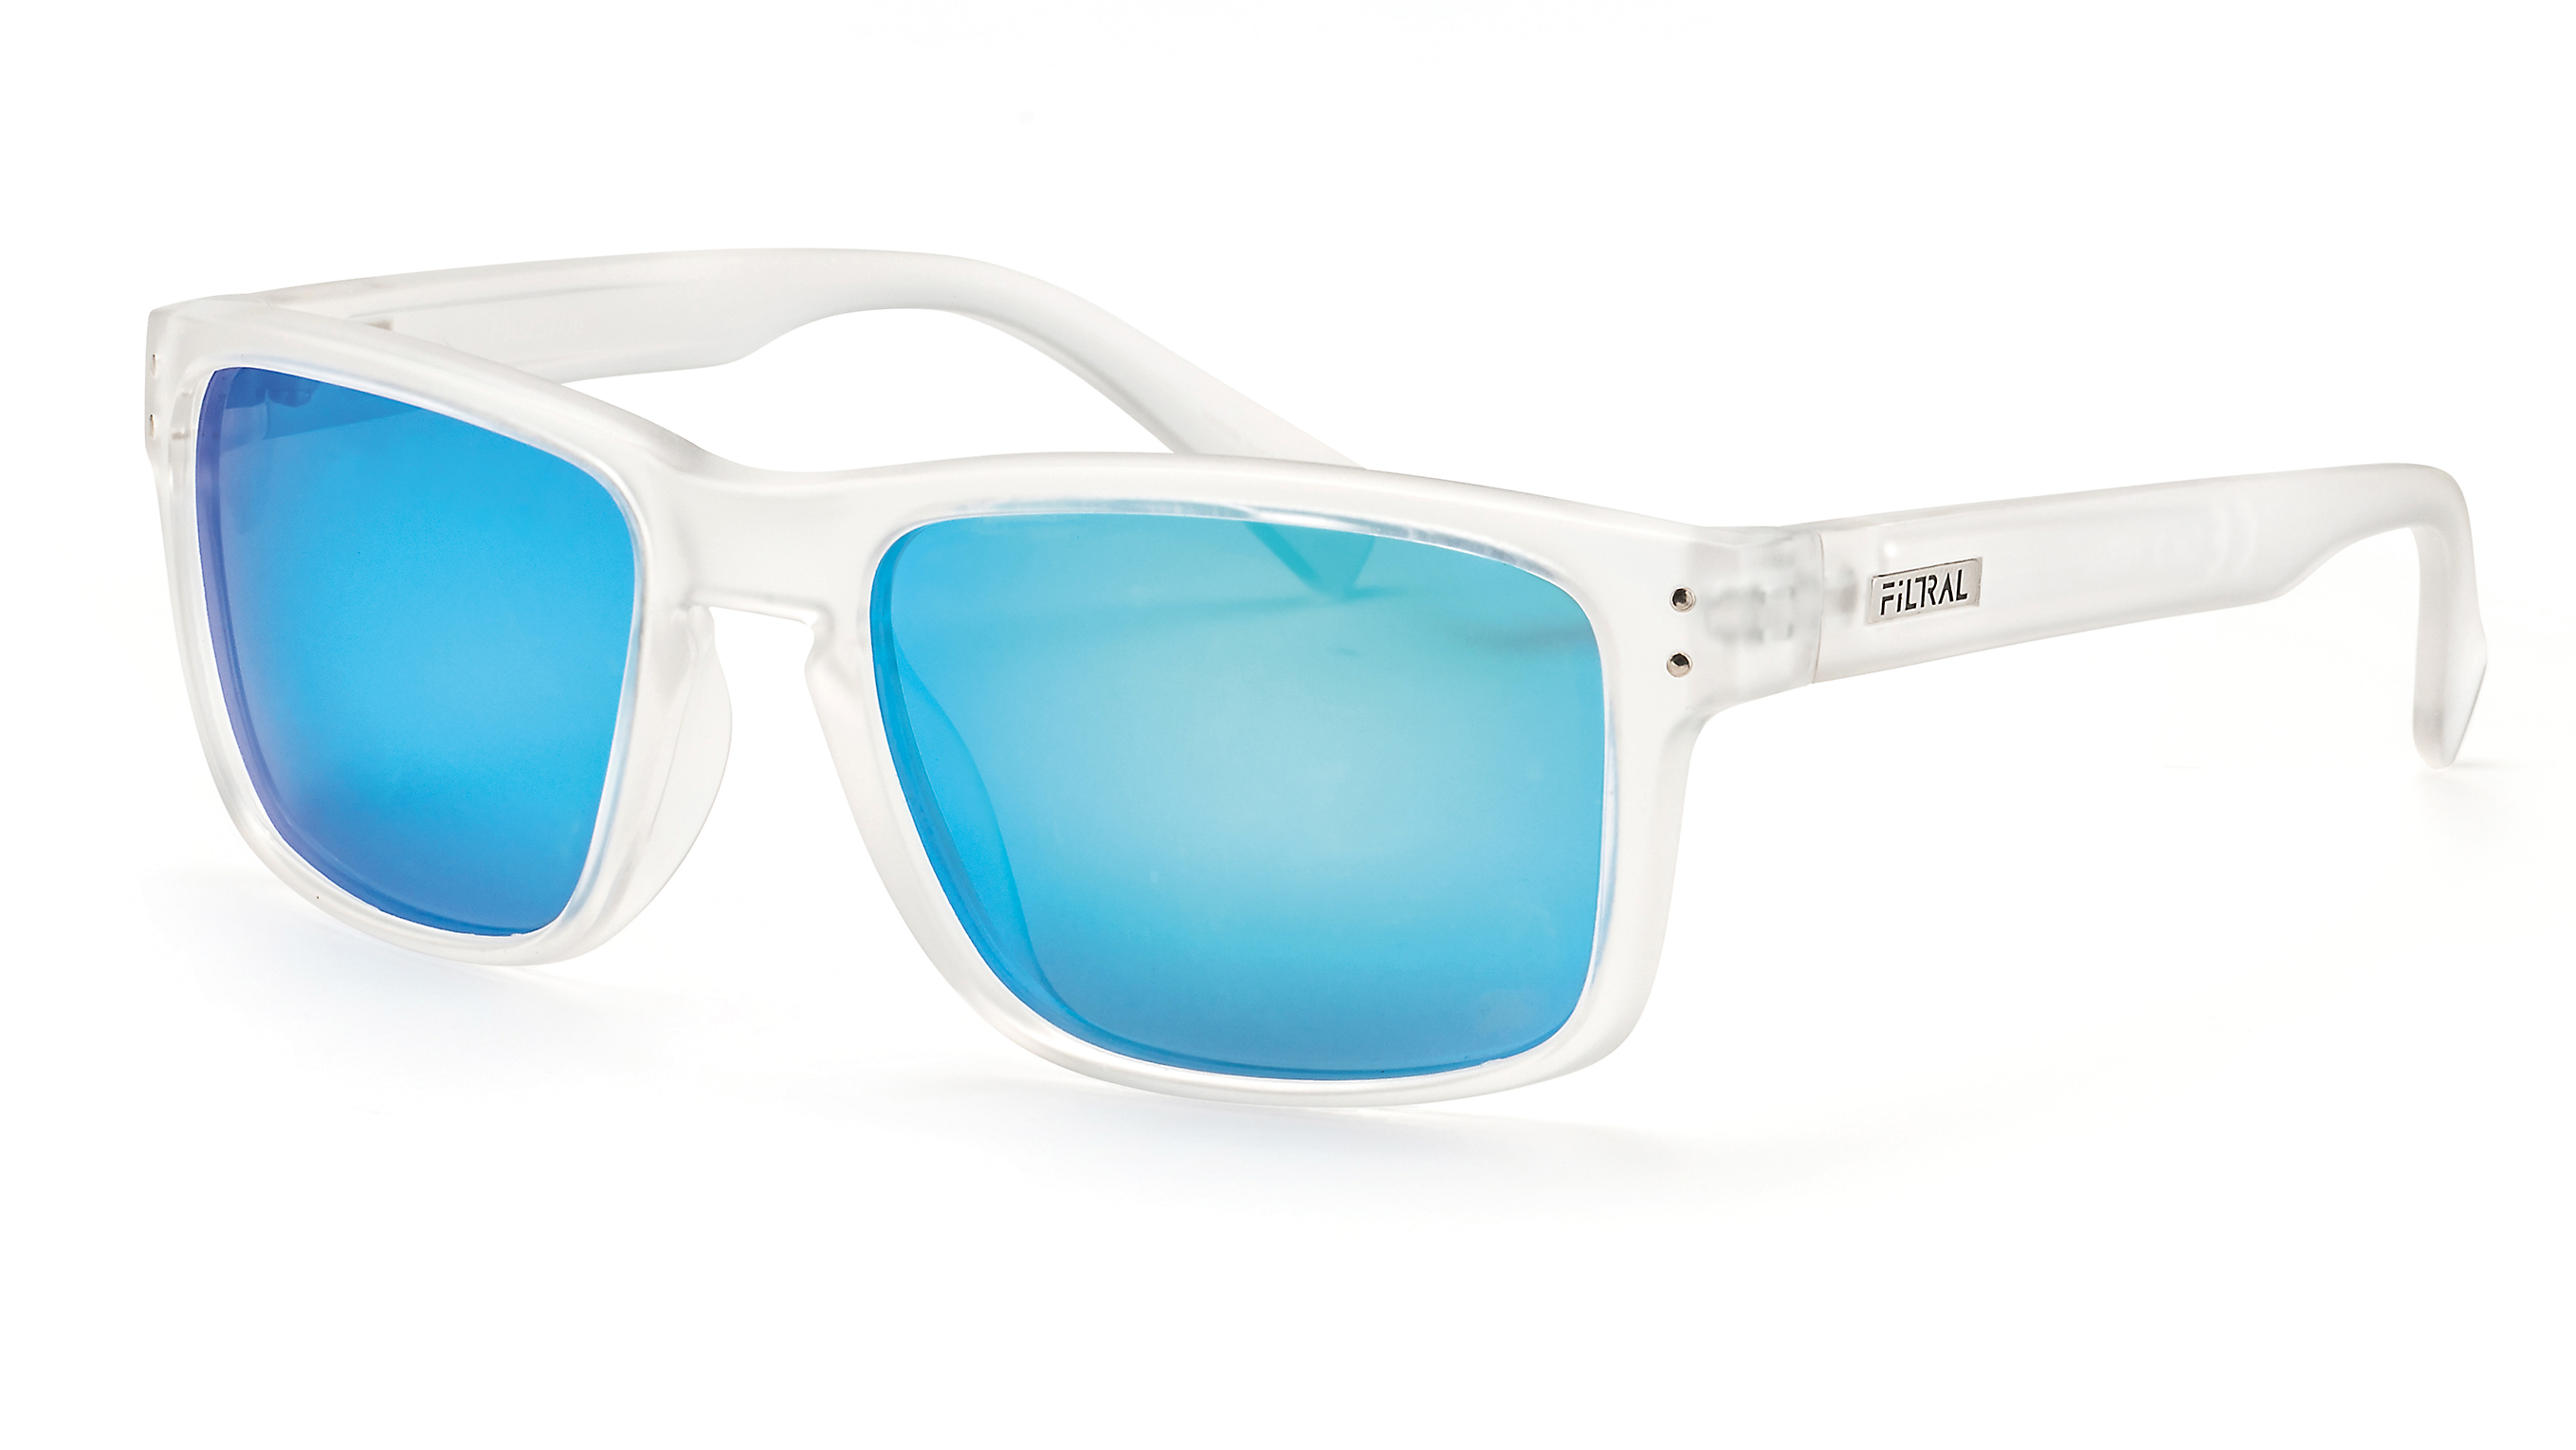 Main view sunglasses 3025708